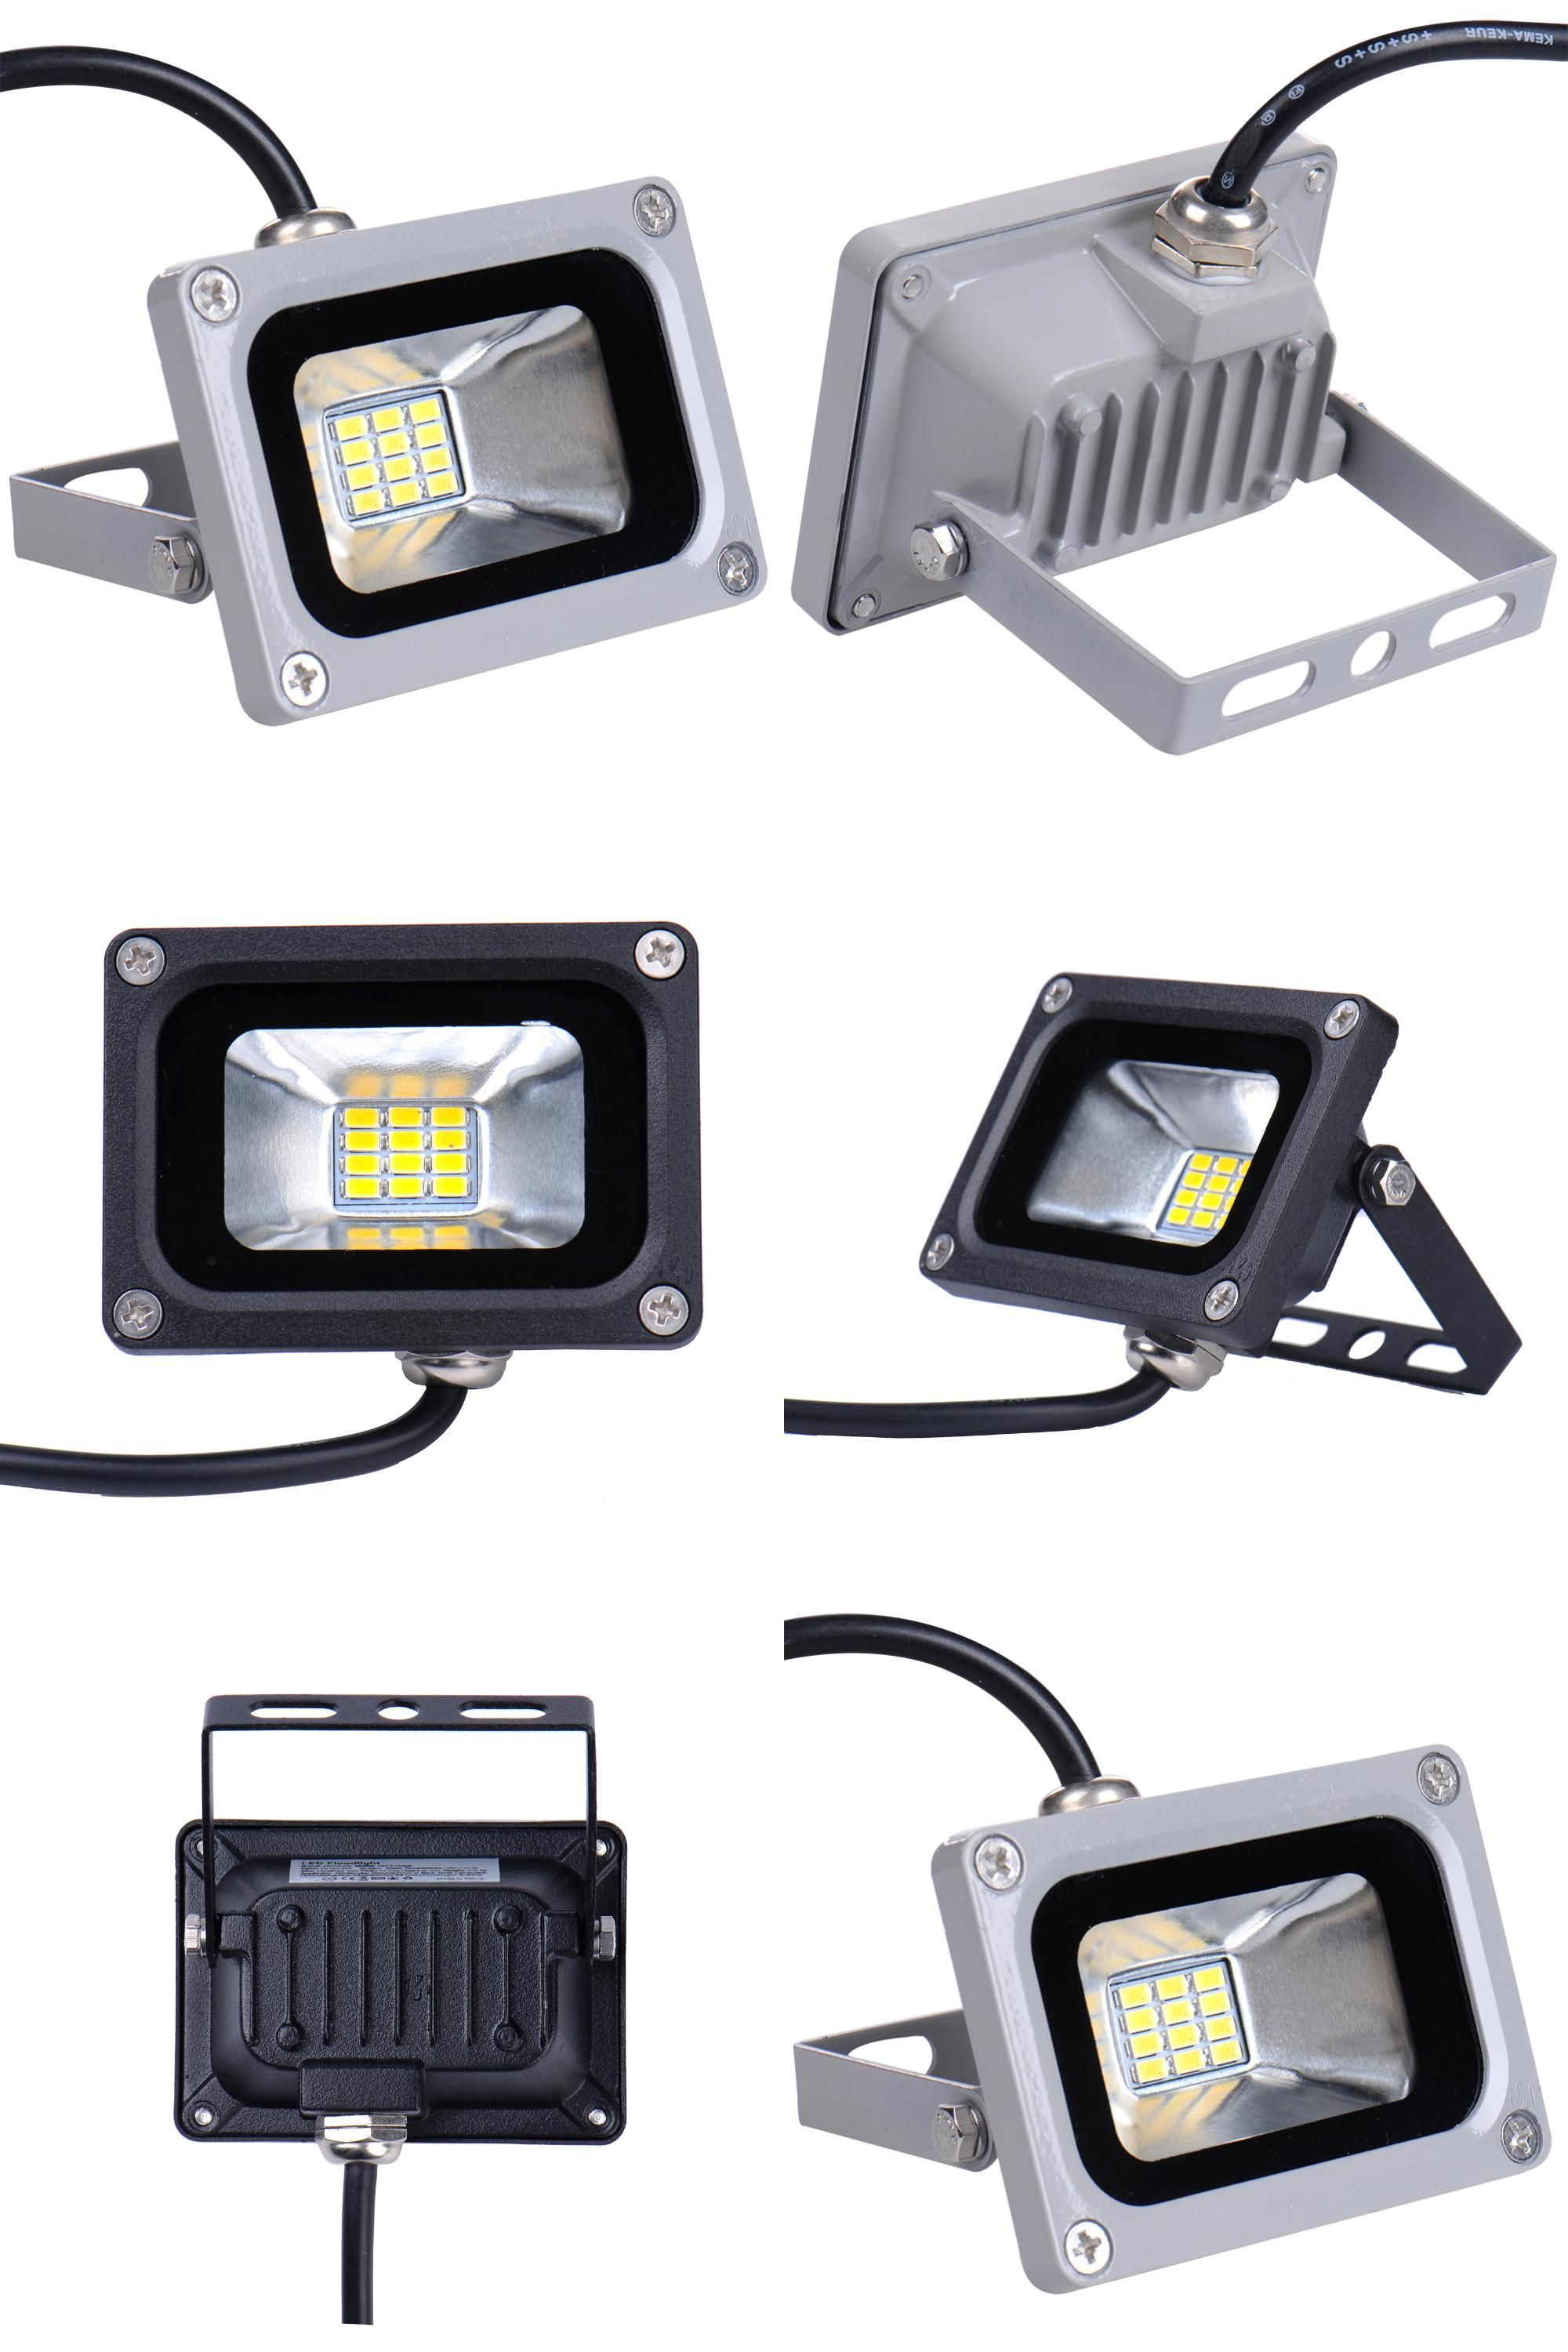 Visit To Buy 12v 10w Waterproof Ip65 Refletor Led Flood Light Landscape Outdoor Lighting Lamp Square Outdoor Flood Lights Garden Spotlights Led Flood Lights